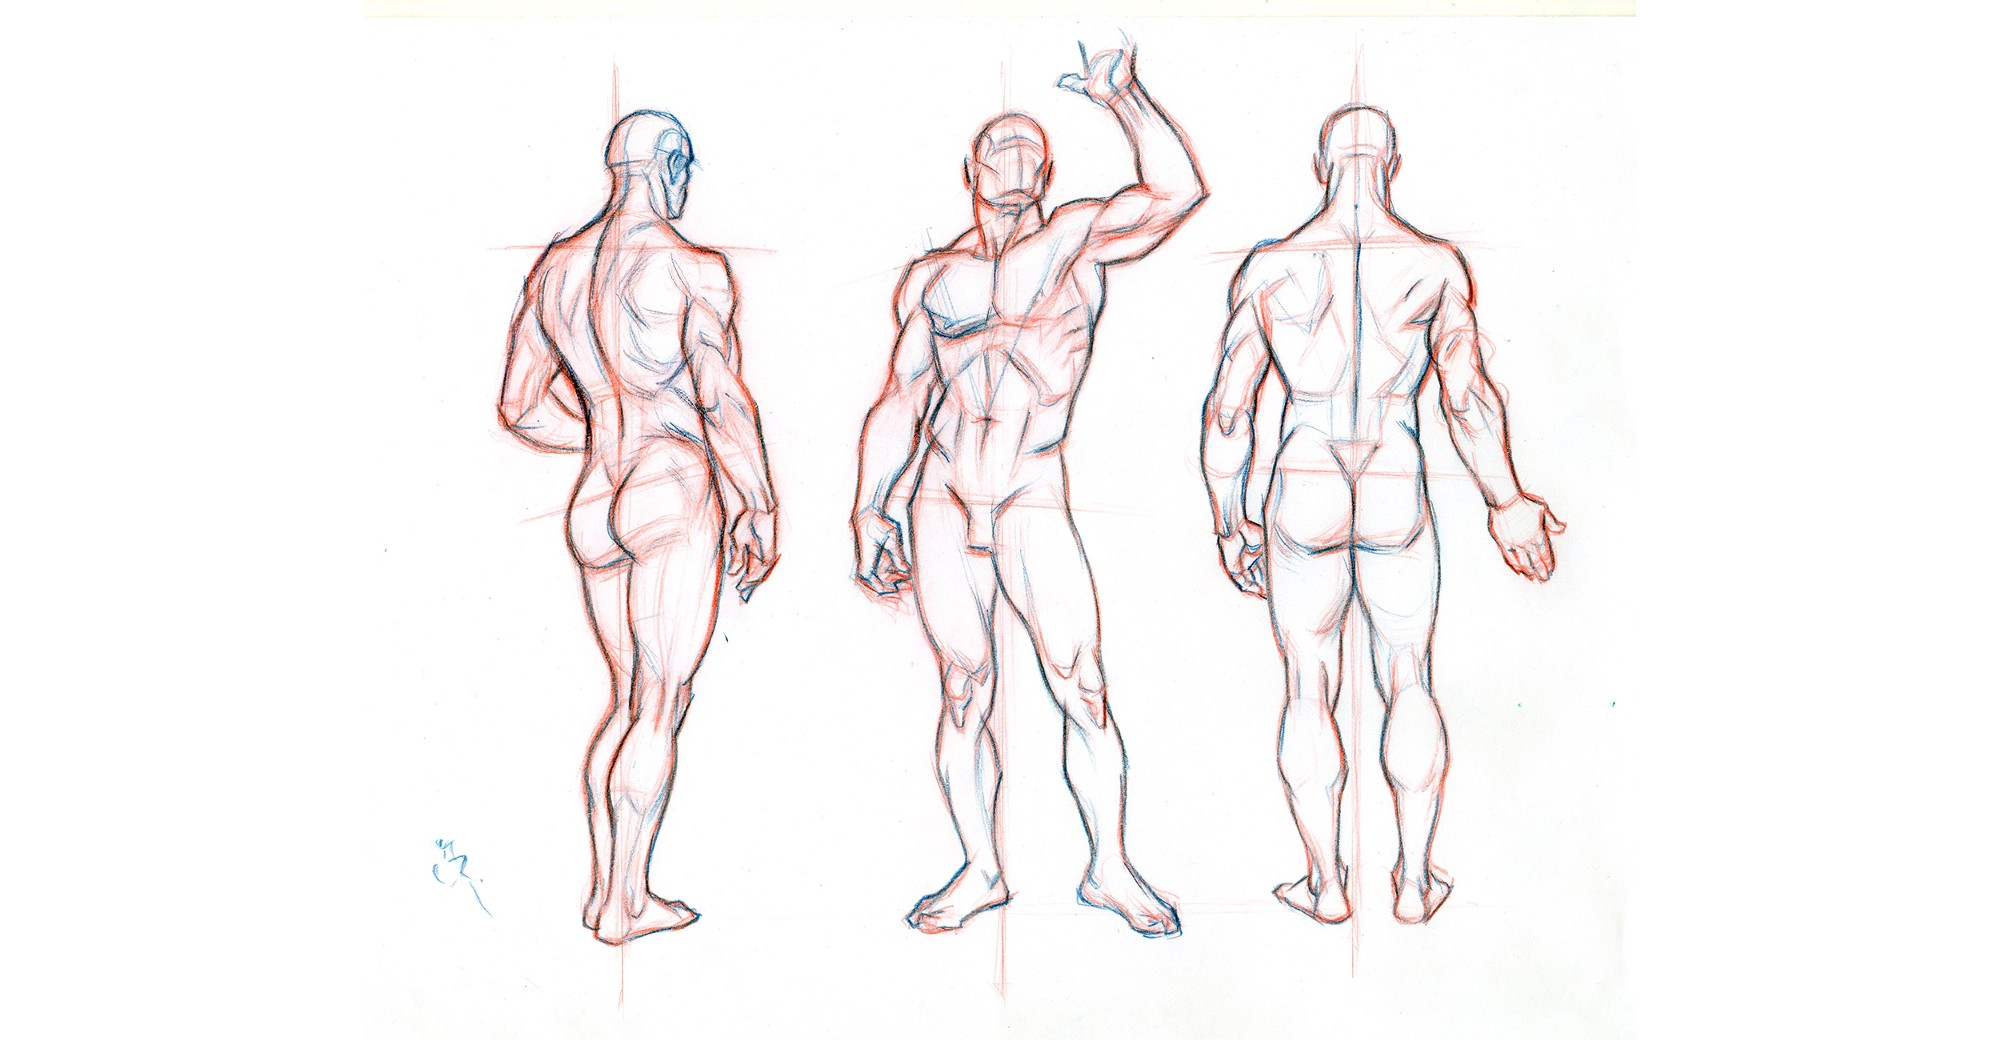 Beginners Guide Importance Of Proper Body Proportions And How To